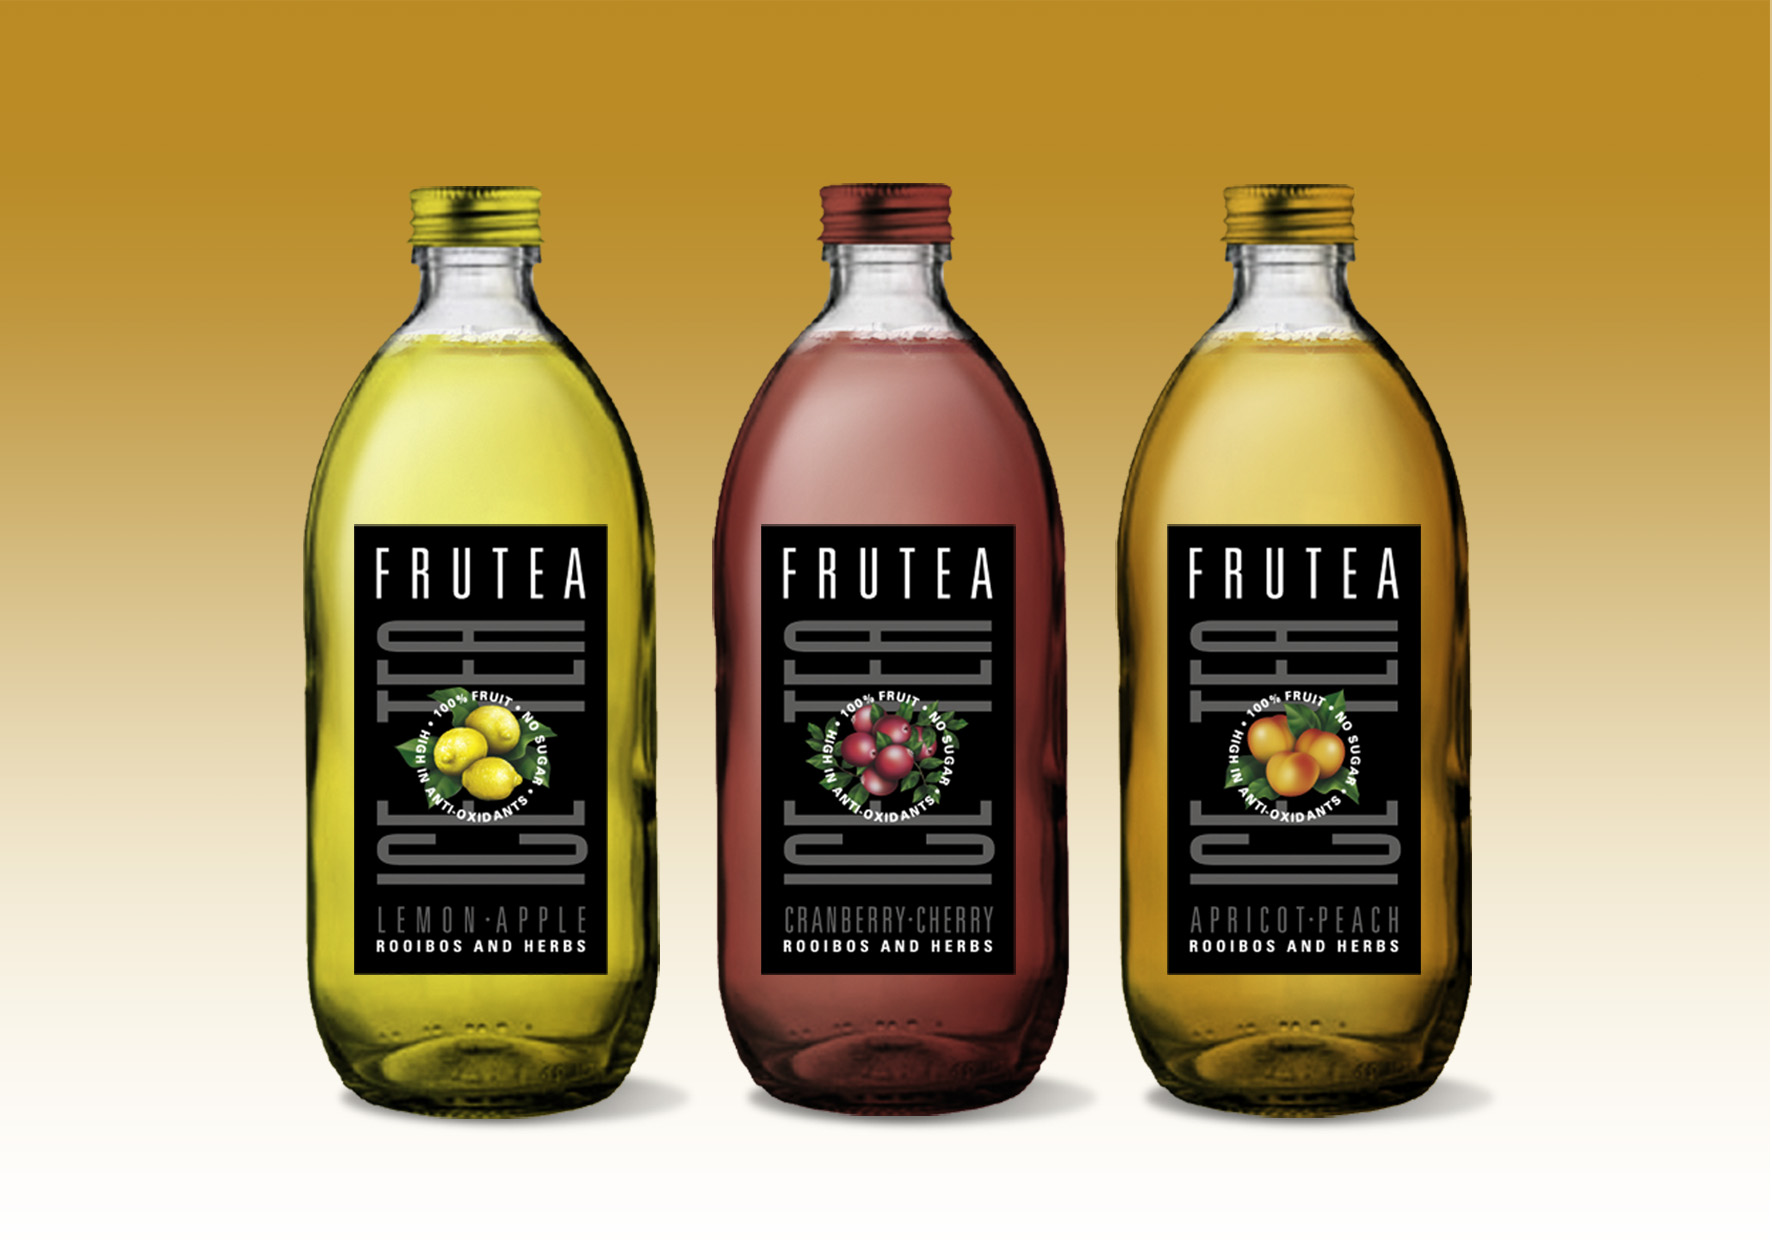 Frutea Packaging